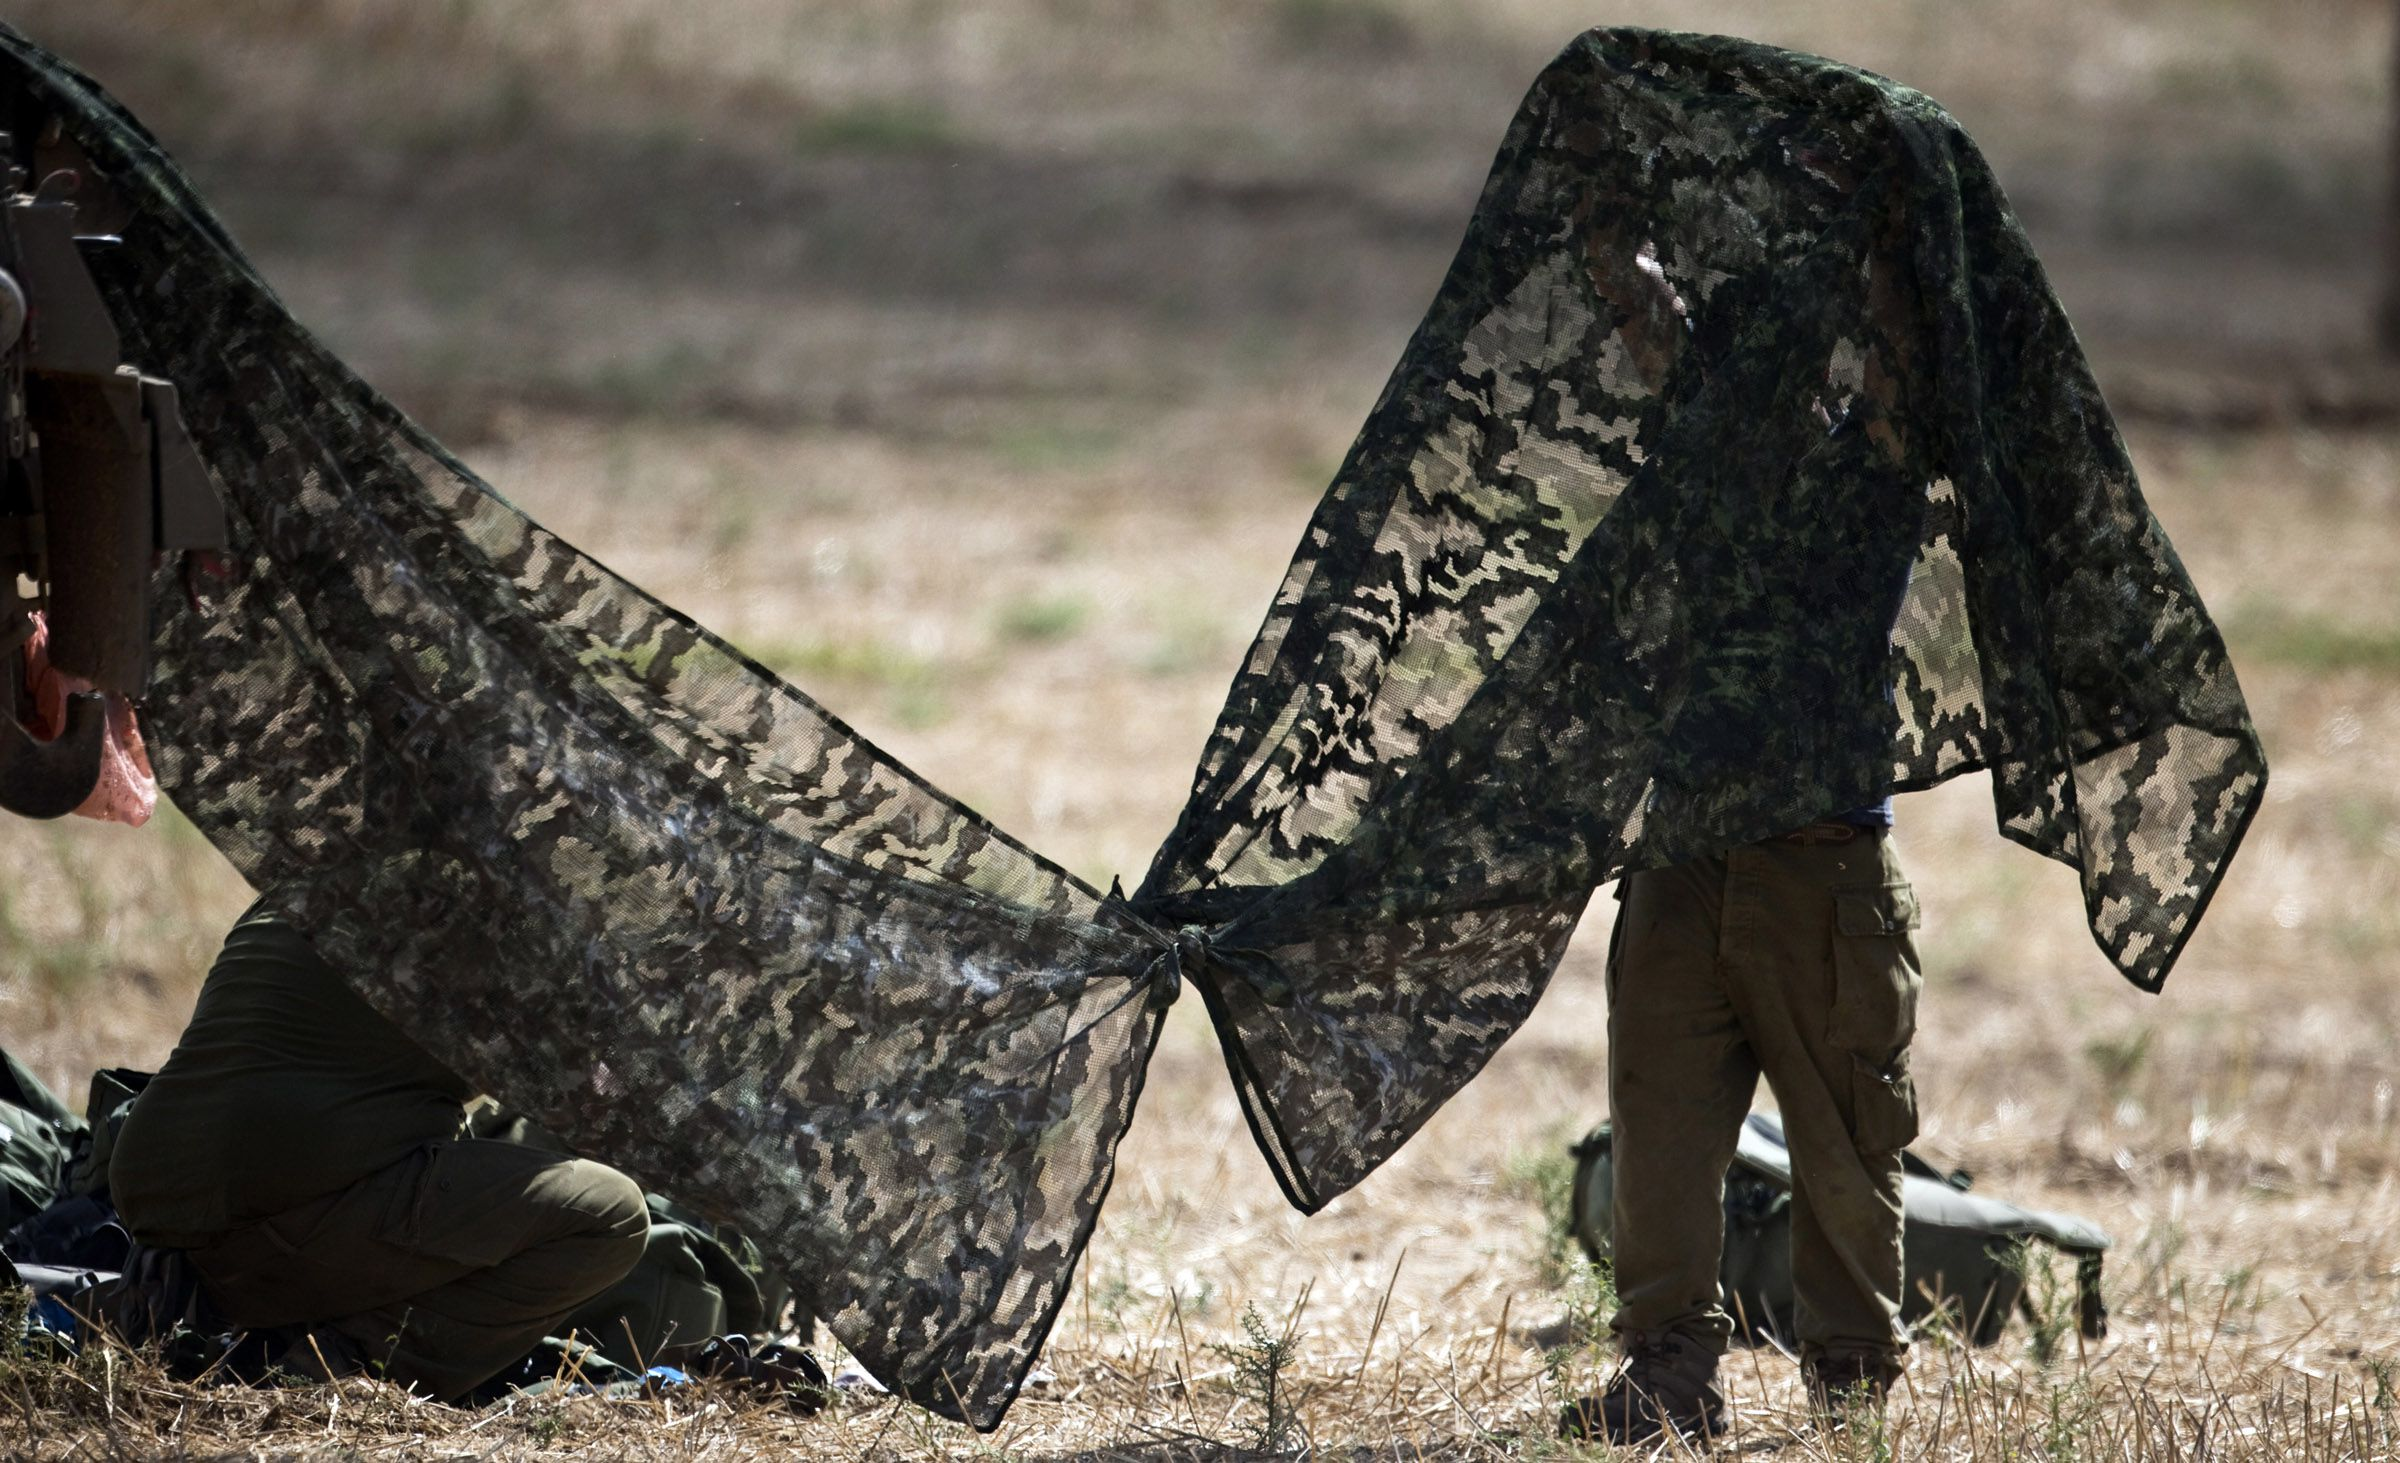 An Israeli army reservist fixes a camouflage net in a staging area outside the Gaza Strip July 18, 2014. Israel stepped up its ground offensive in Gaza early on Friday pounding targets with artillery fire and using tanks and infantry to battle Hamas fighters. Orange flashes illuminated the eastern Gaza Strip as Israeli gunboats off the Mediterranean coast fired shells and tracer bullets, and helicopters fired across the border. Hamas fired rockets back into Israel towards the southern towns of Ashdod and Ashkelon. Palestinian health officials said 23 Palestinians had been killed since Israel launched its ground offensive against the densely-populated strip of 1.8 million Palestinians on Thursday. Israel said one of its soldiers had been killed in fighting.